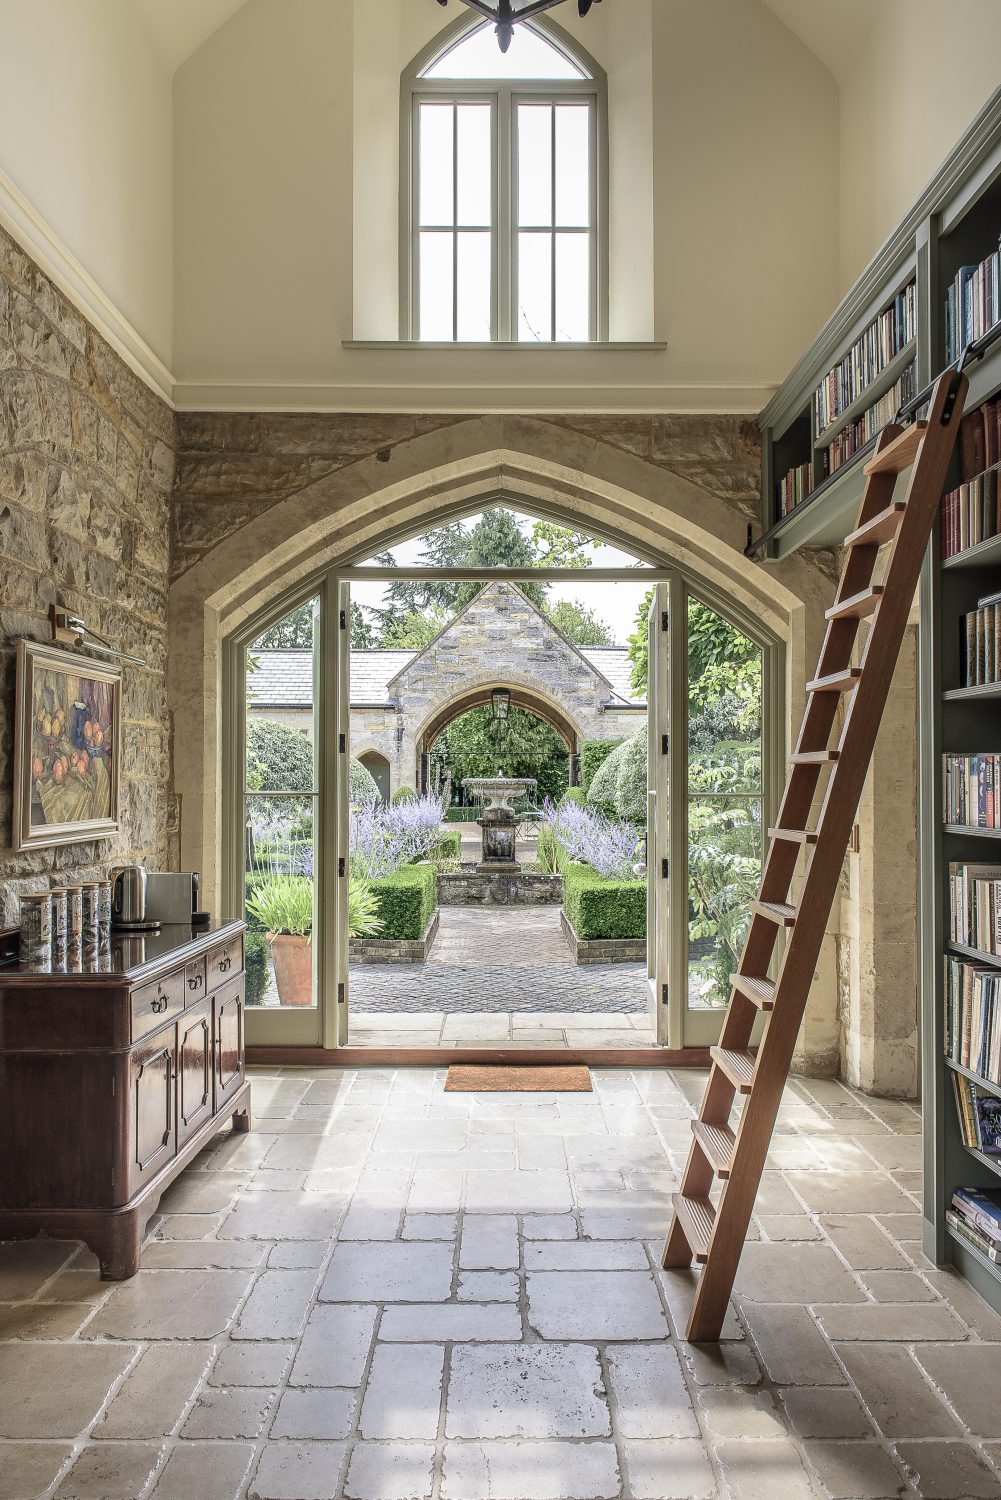 This area has a very high ceiling – it was once the hay loft – and French windows at either side, looking out to the courtyard one way and the garden the other. The perfect spot for guest breakfasts when it's not warm enough to be outside.